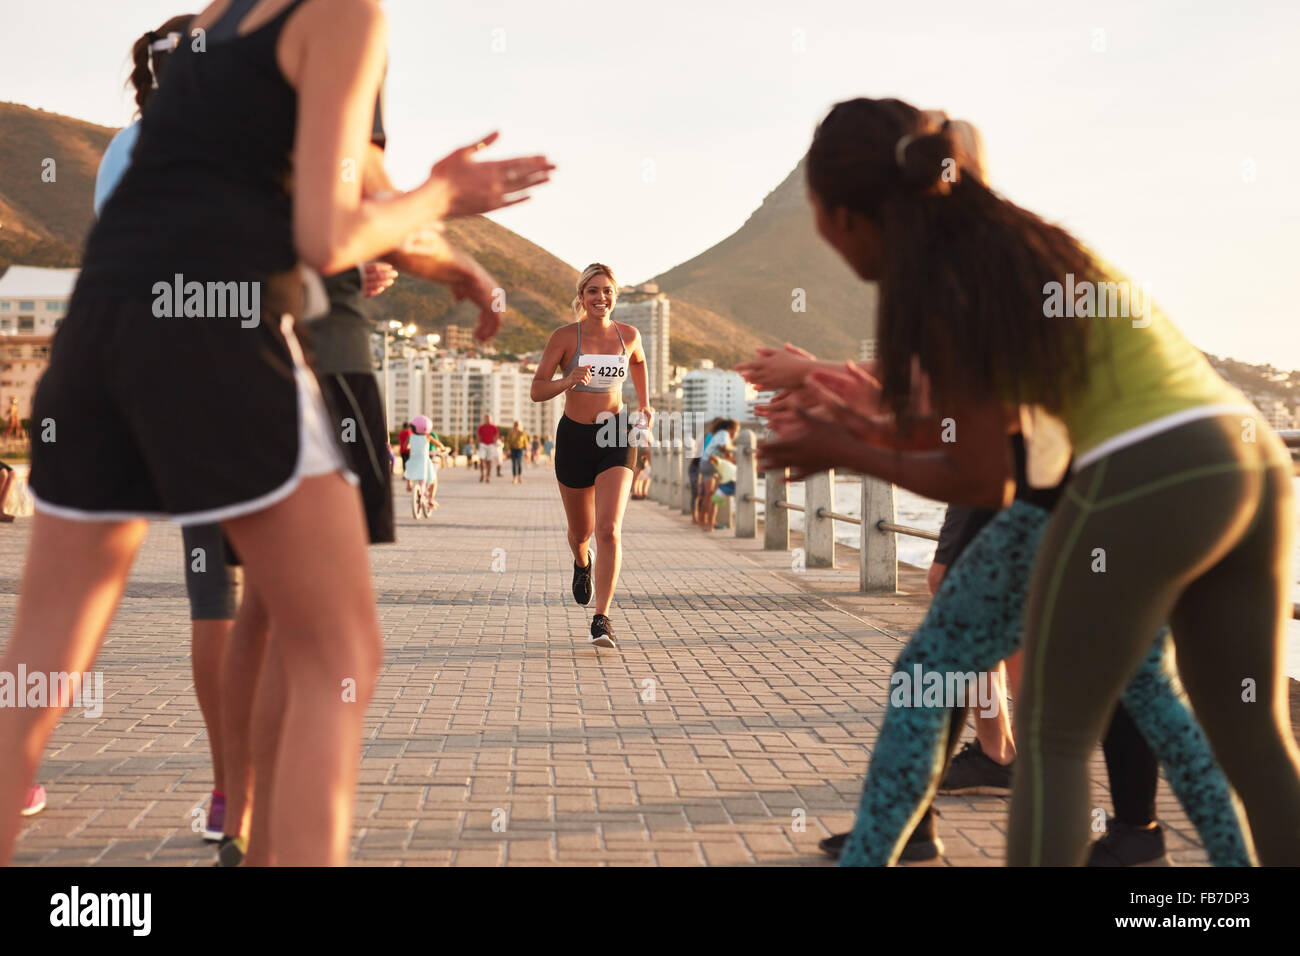 Happy young female athlete being applauded by supporters as she reaches the finishing line of a running race. Young - Stock Image